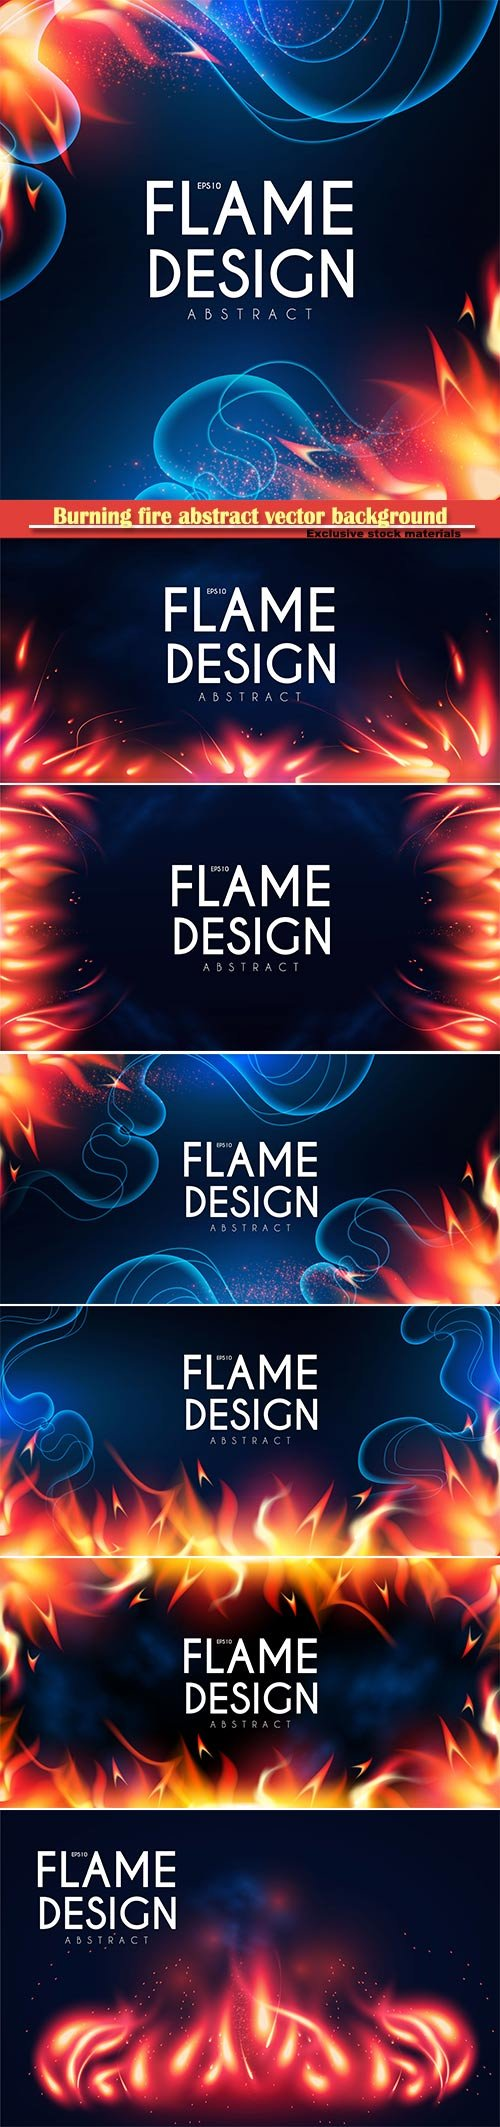 Burning fire abstract vector background, light effect